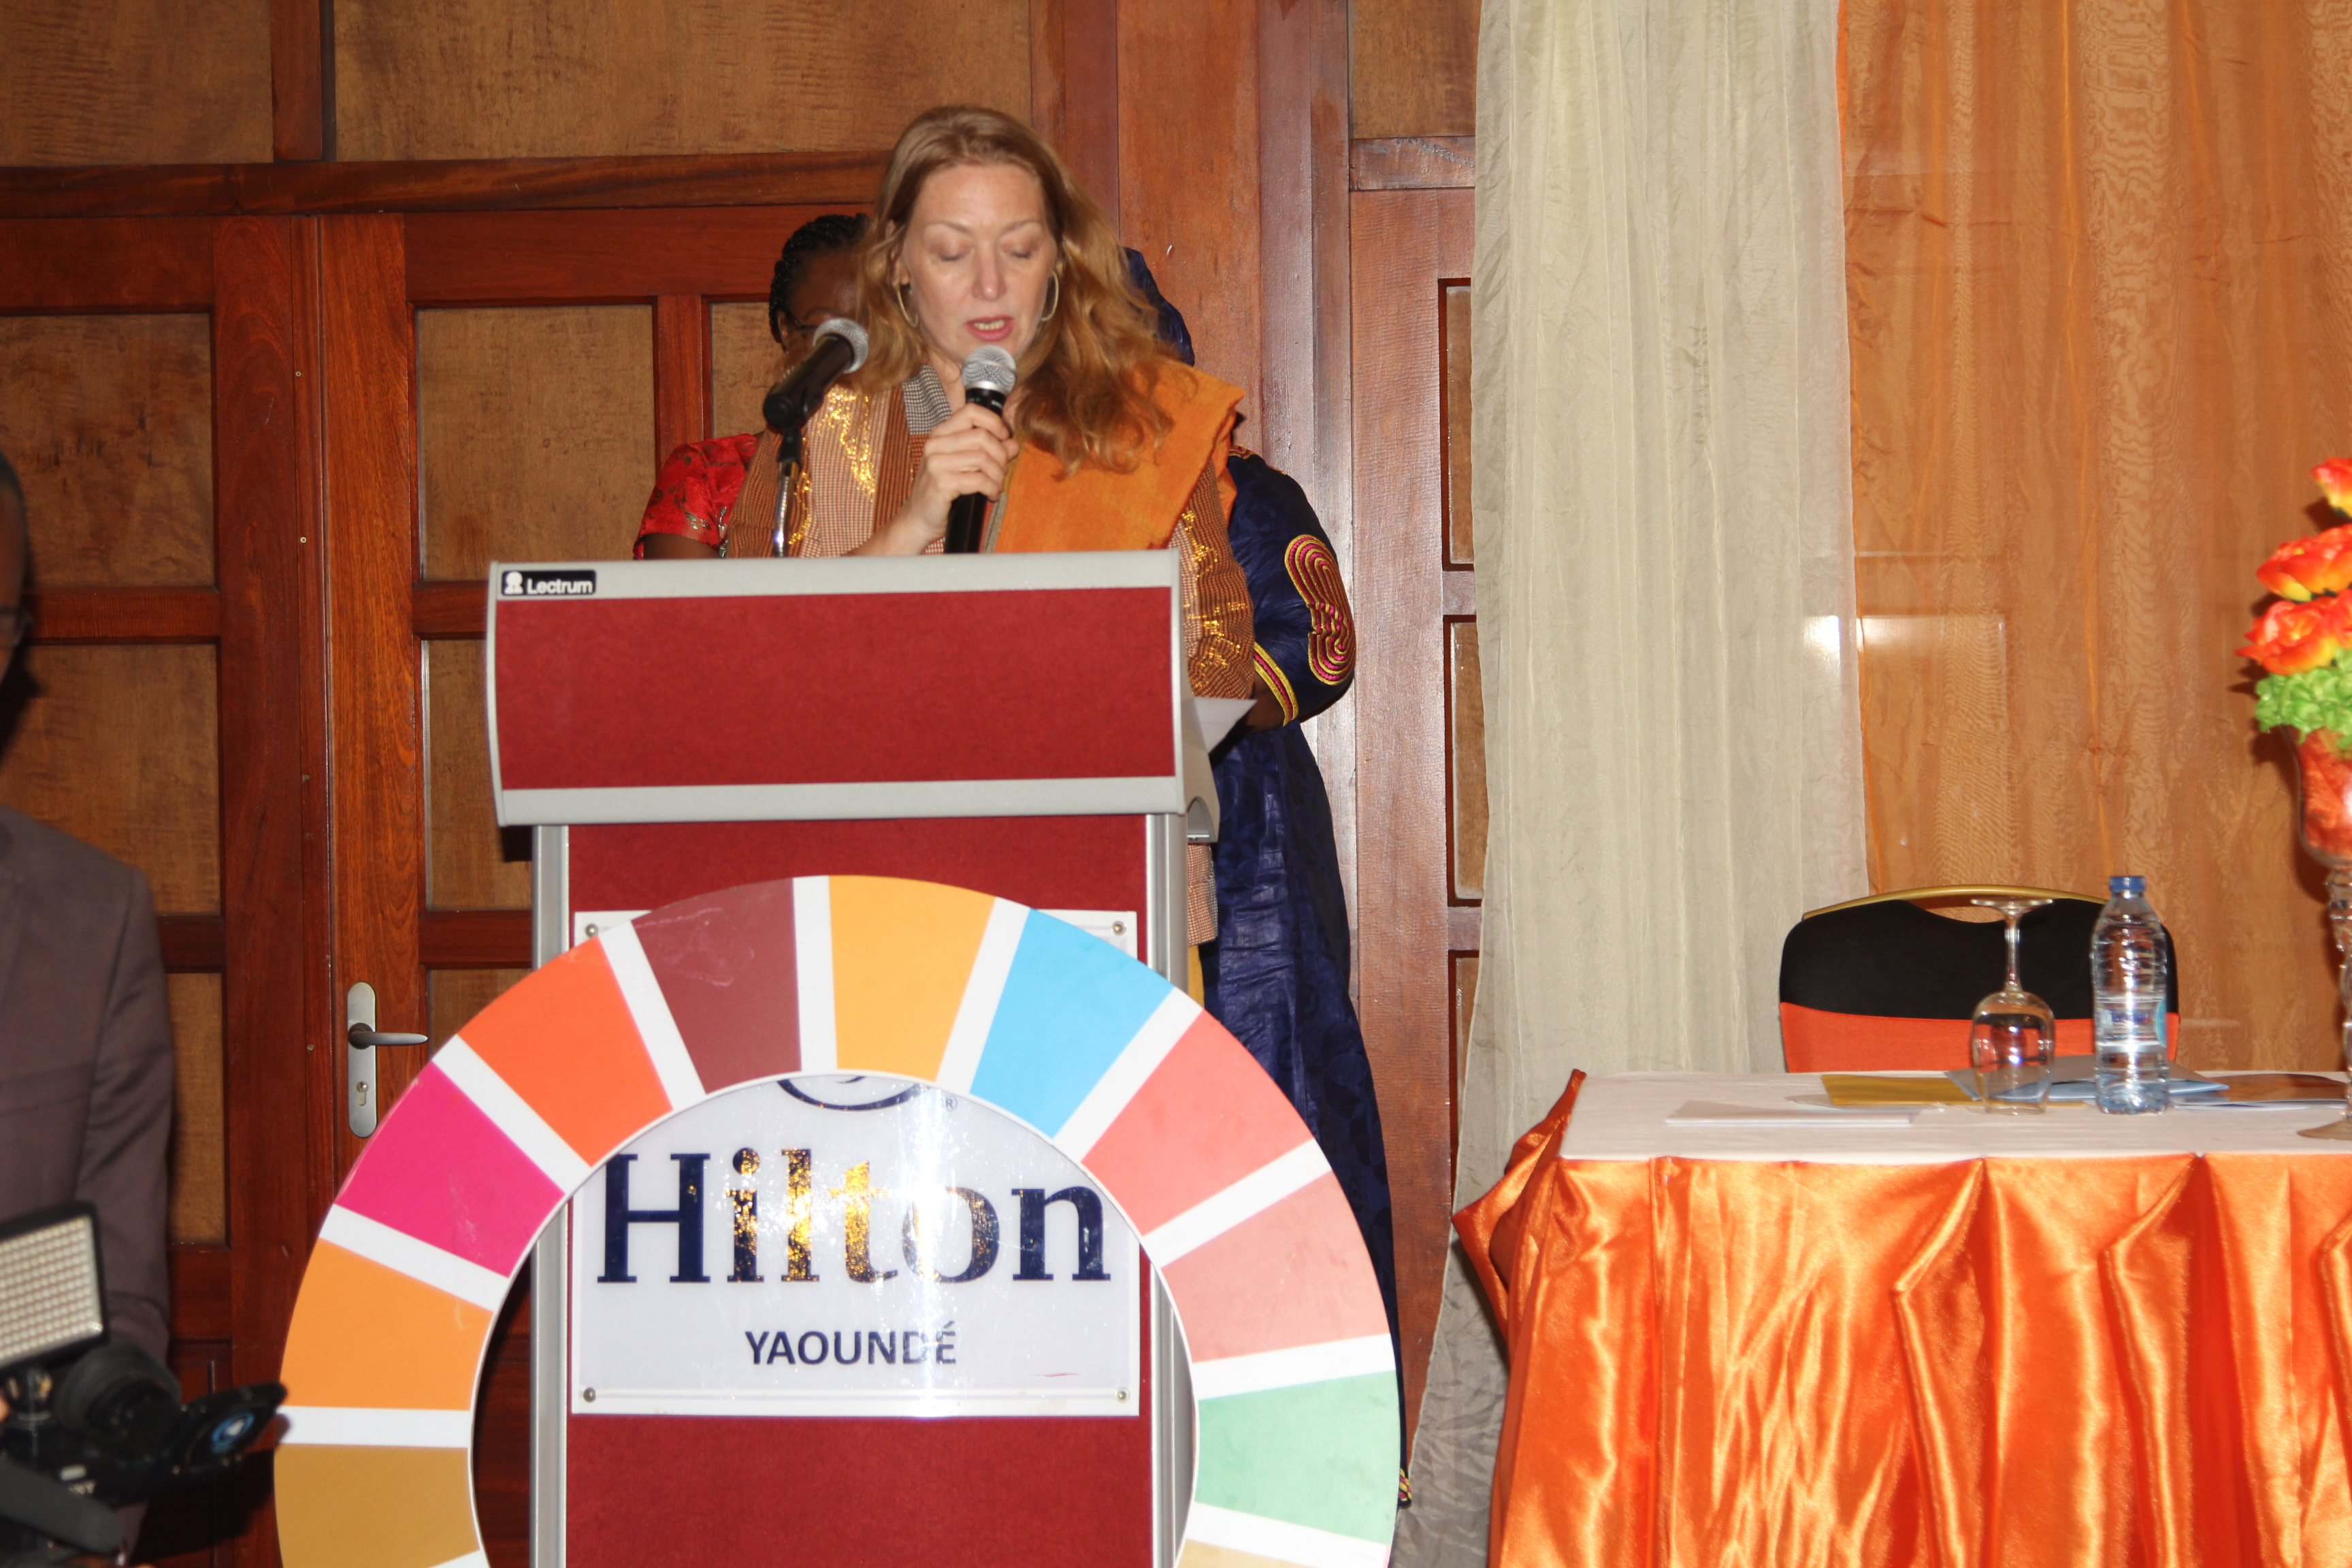 Allegra Baiocchi, Resident Coordinator of the United Nations System in Cameroon, Delivering her welcome address during the Official launch of the days of Activism campaign in Cameroon. Photo credit: Teclaire Same/UN Women